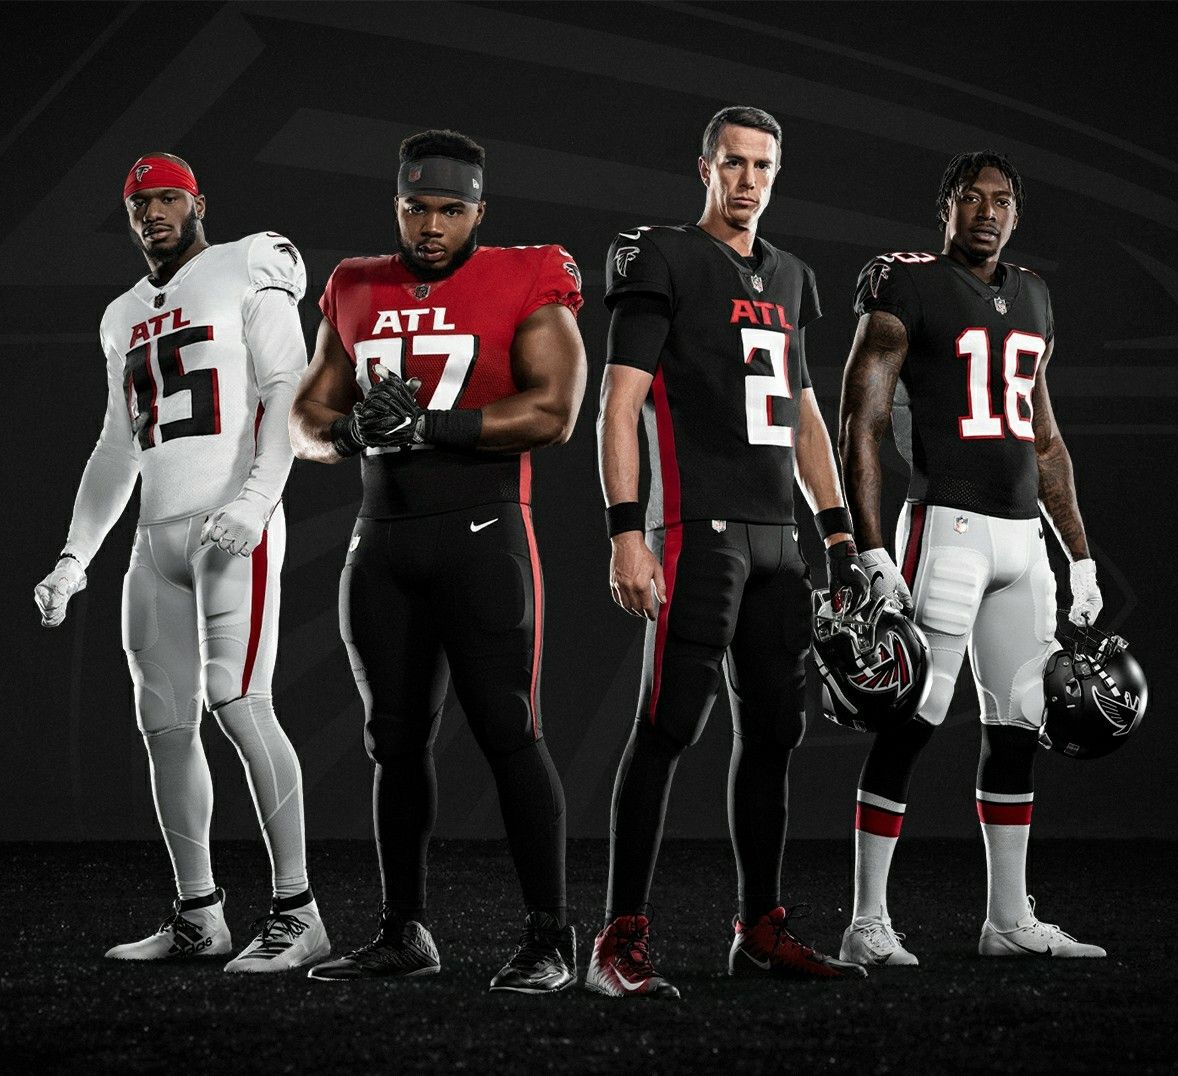 2020 Atlanta Falcons Uniforms In 2020 Nfl Uniforms New Nfl Uniforms Atlanta Falcons